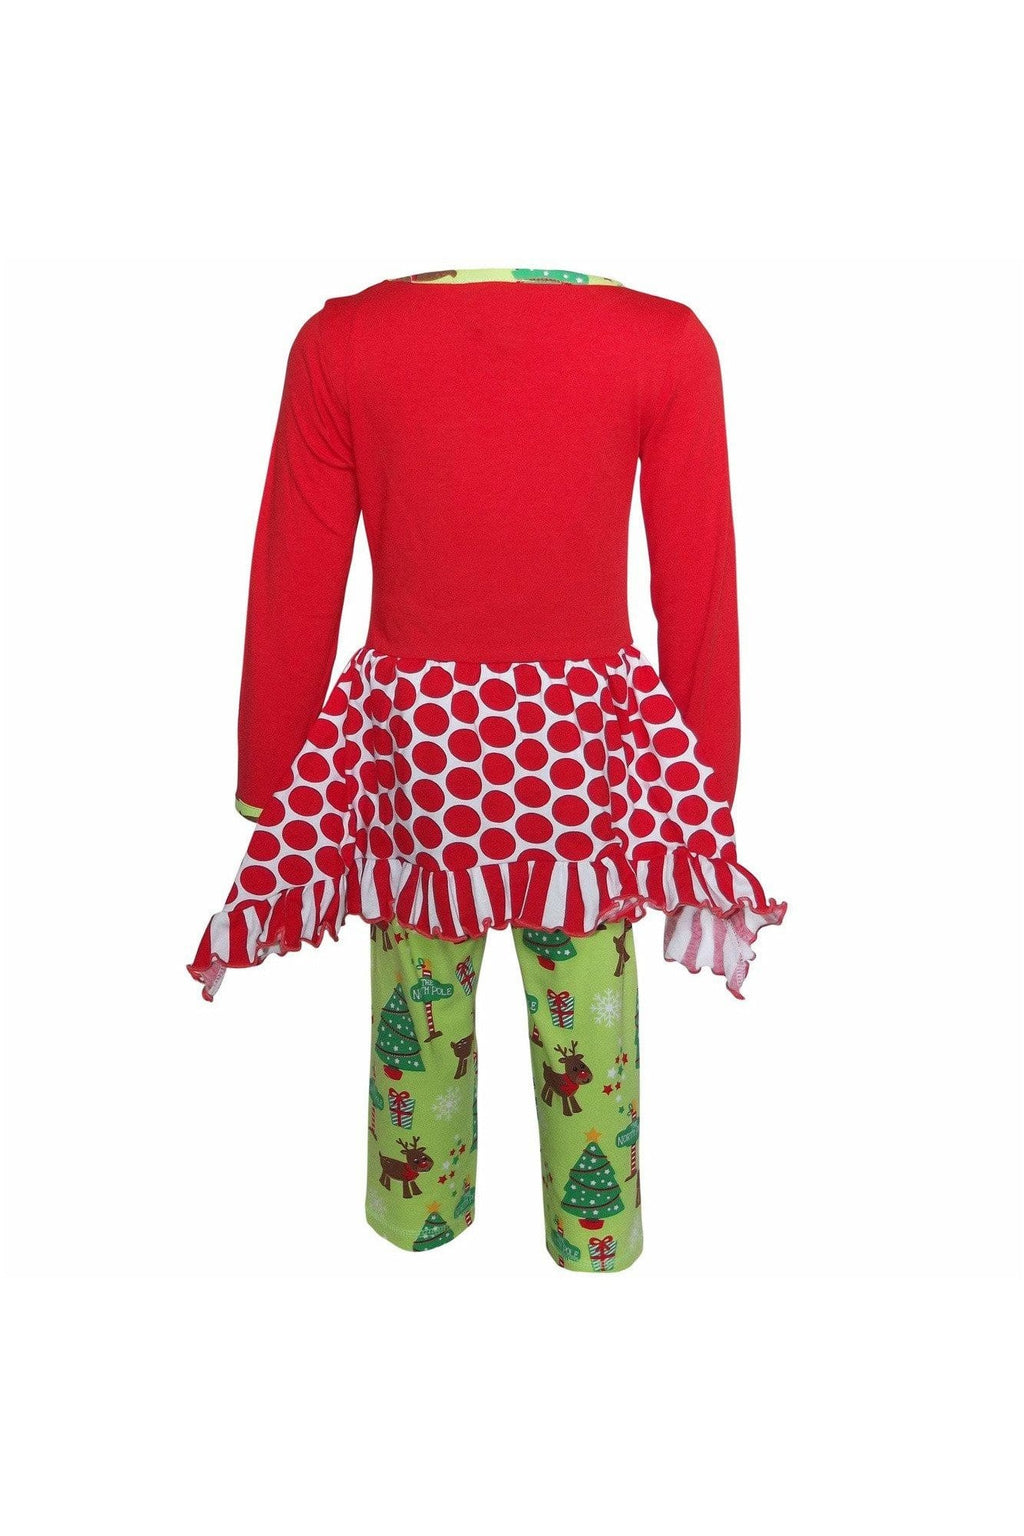 AnnLoren Girls Christmas Reindeer Tunic and Holiday Legging Set - Himelhoch's